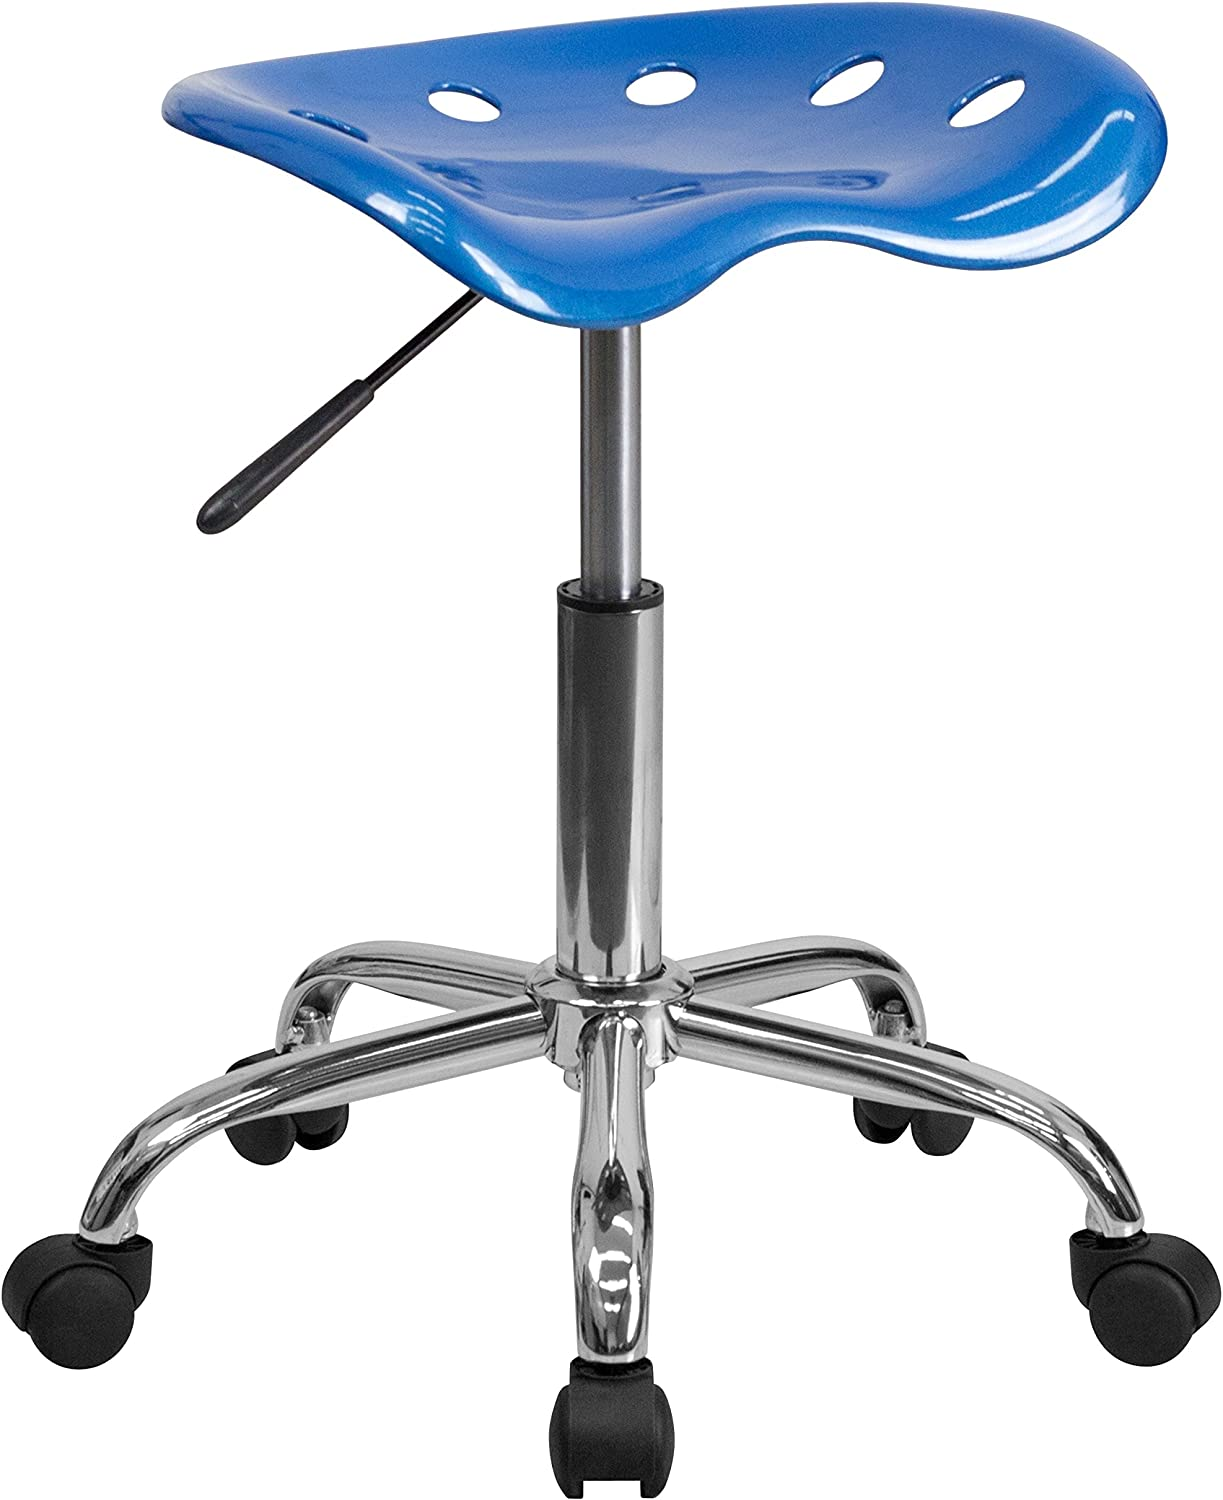 Flash Furniture Vibrant Bright Blue Tractor Seat and Chrome Stool